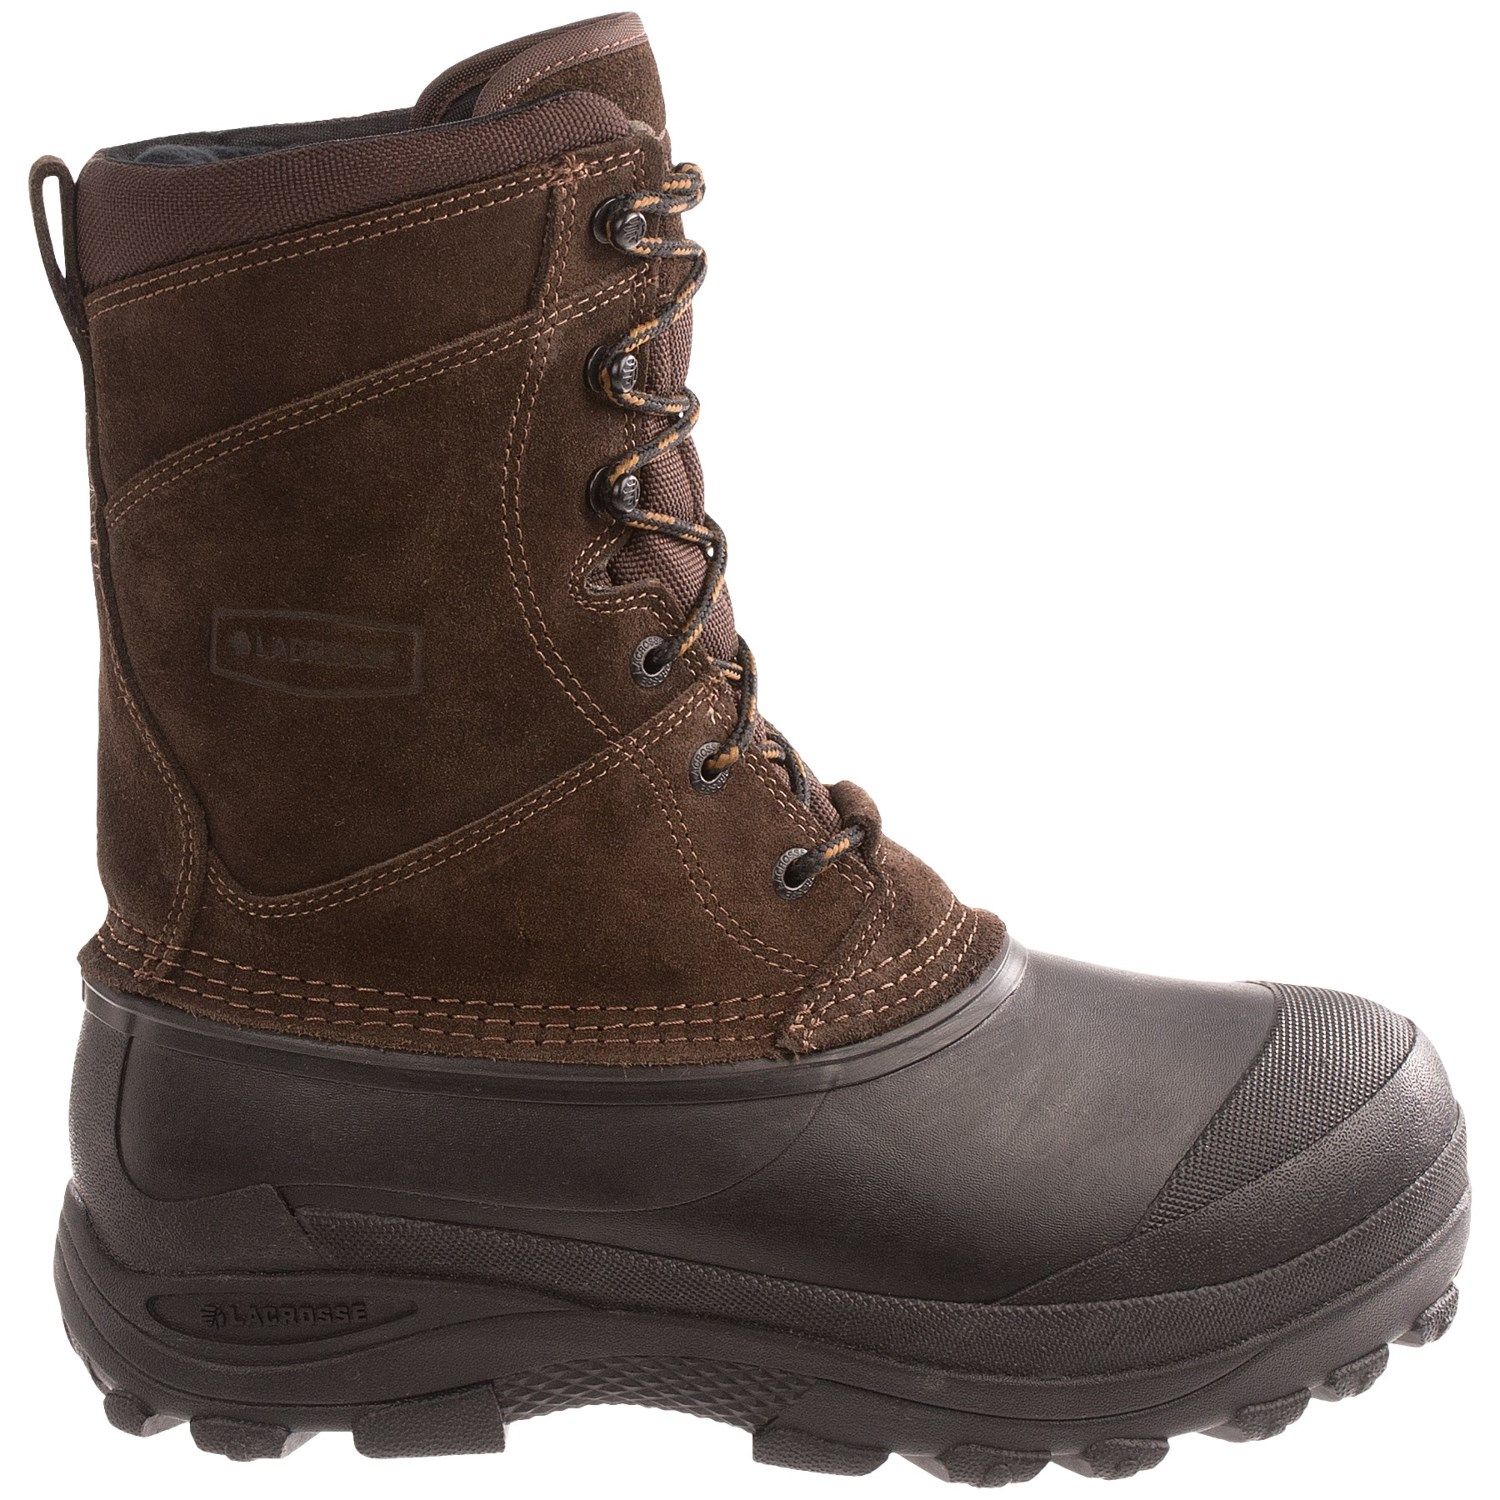 lacrosse pine top leather pac boots for 7609w save 64